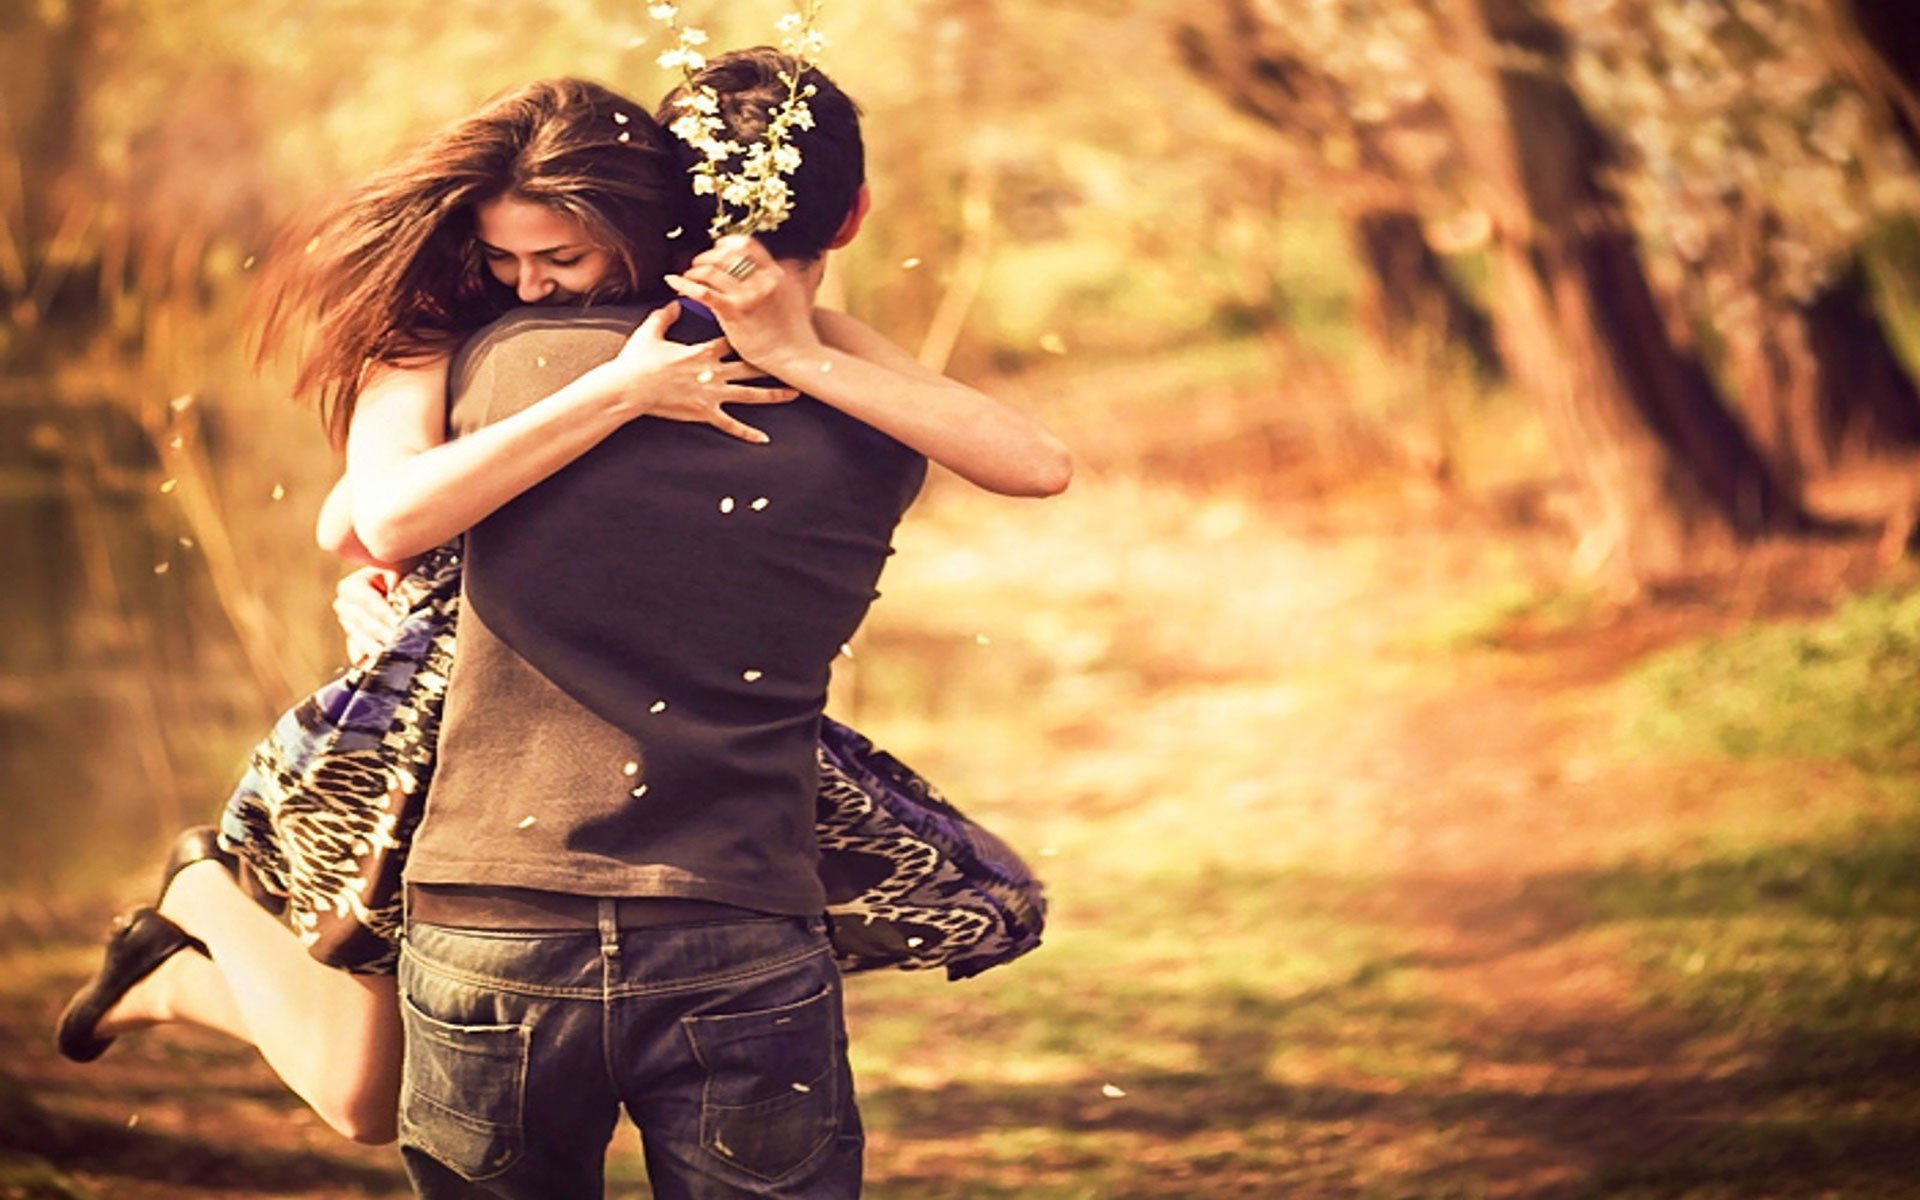 Cute Couple Hug Wallpapers Pictures of Lovers Hugging 1920x1200